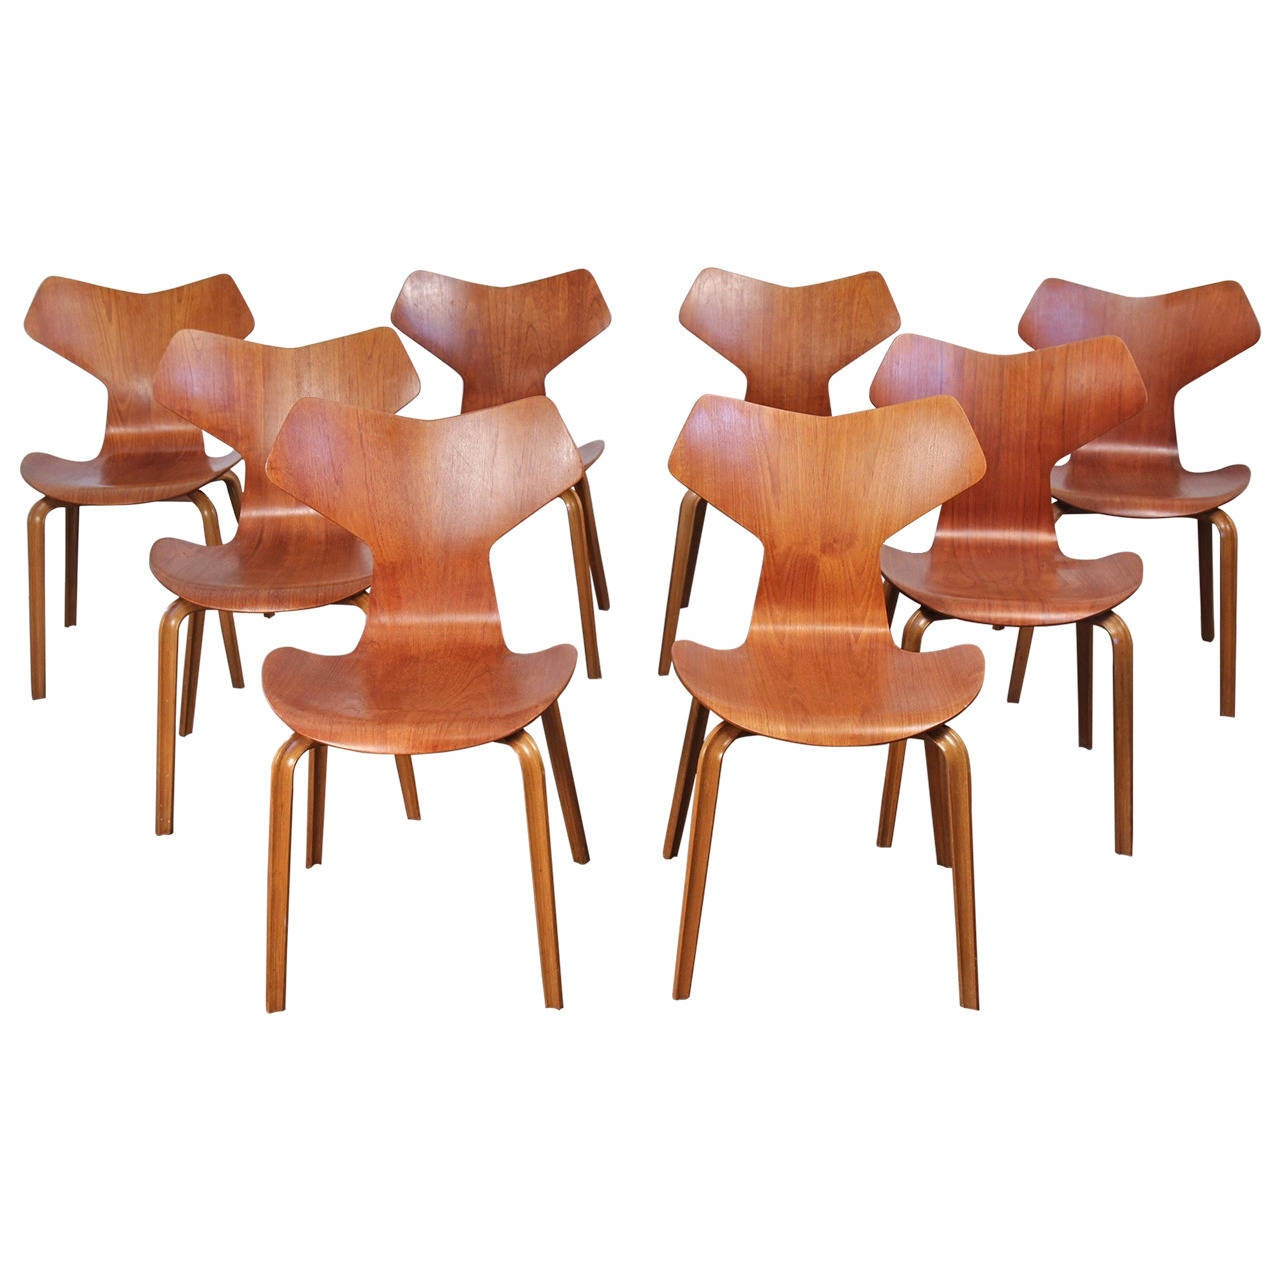 arne jacobsen grand prix chairs at 1stdibs. Black Bedroom Furniture Sets. Home Design Ideas